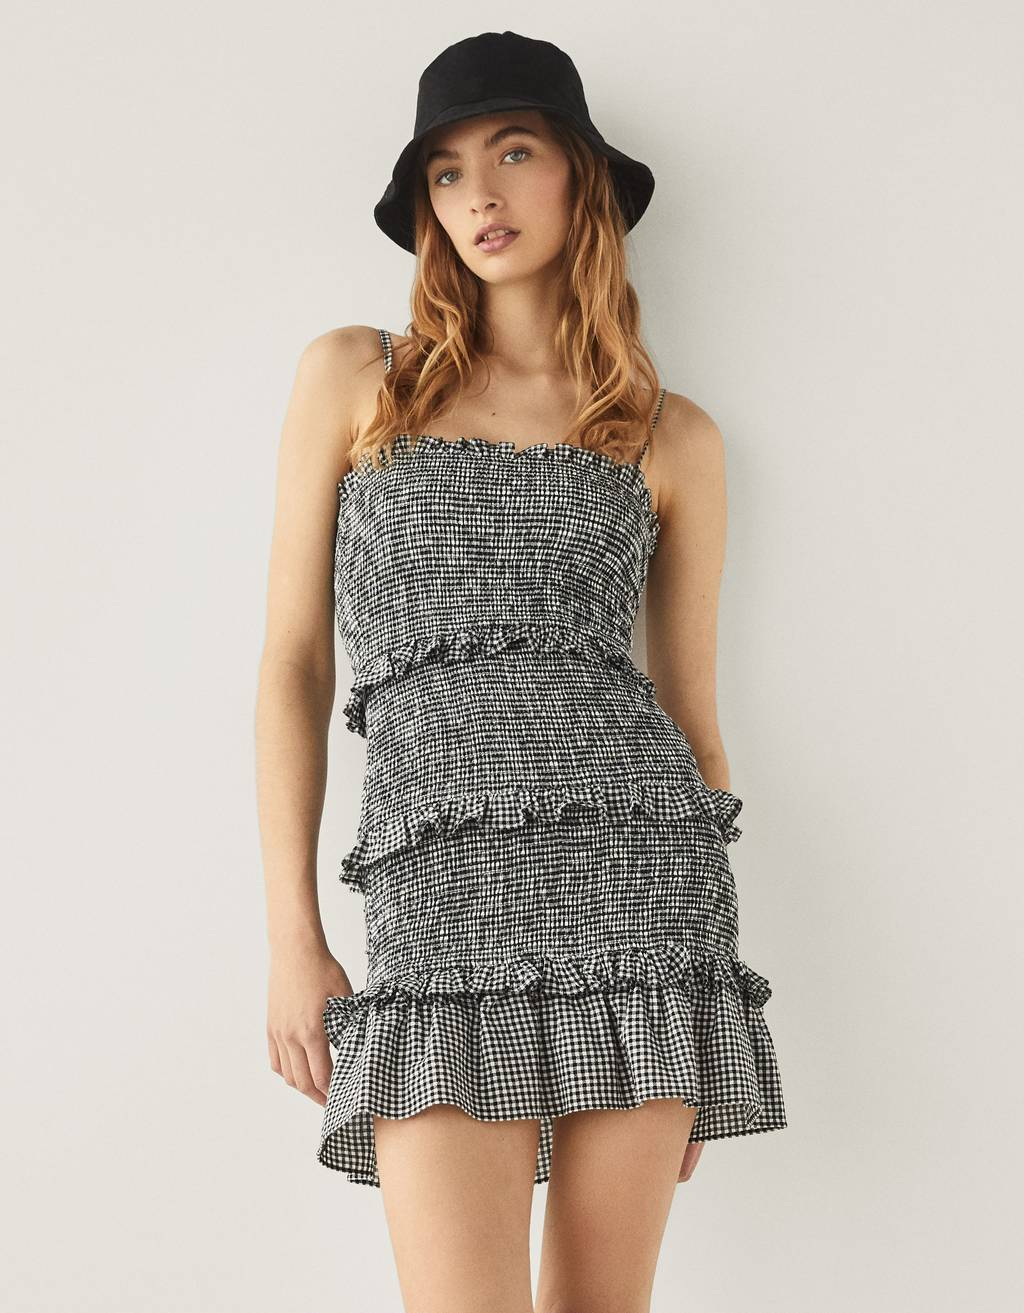 Short dress with ruffles and a gingham check print